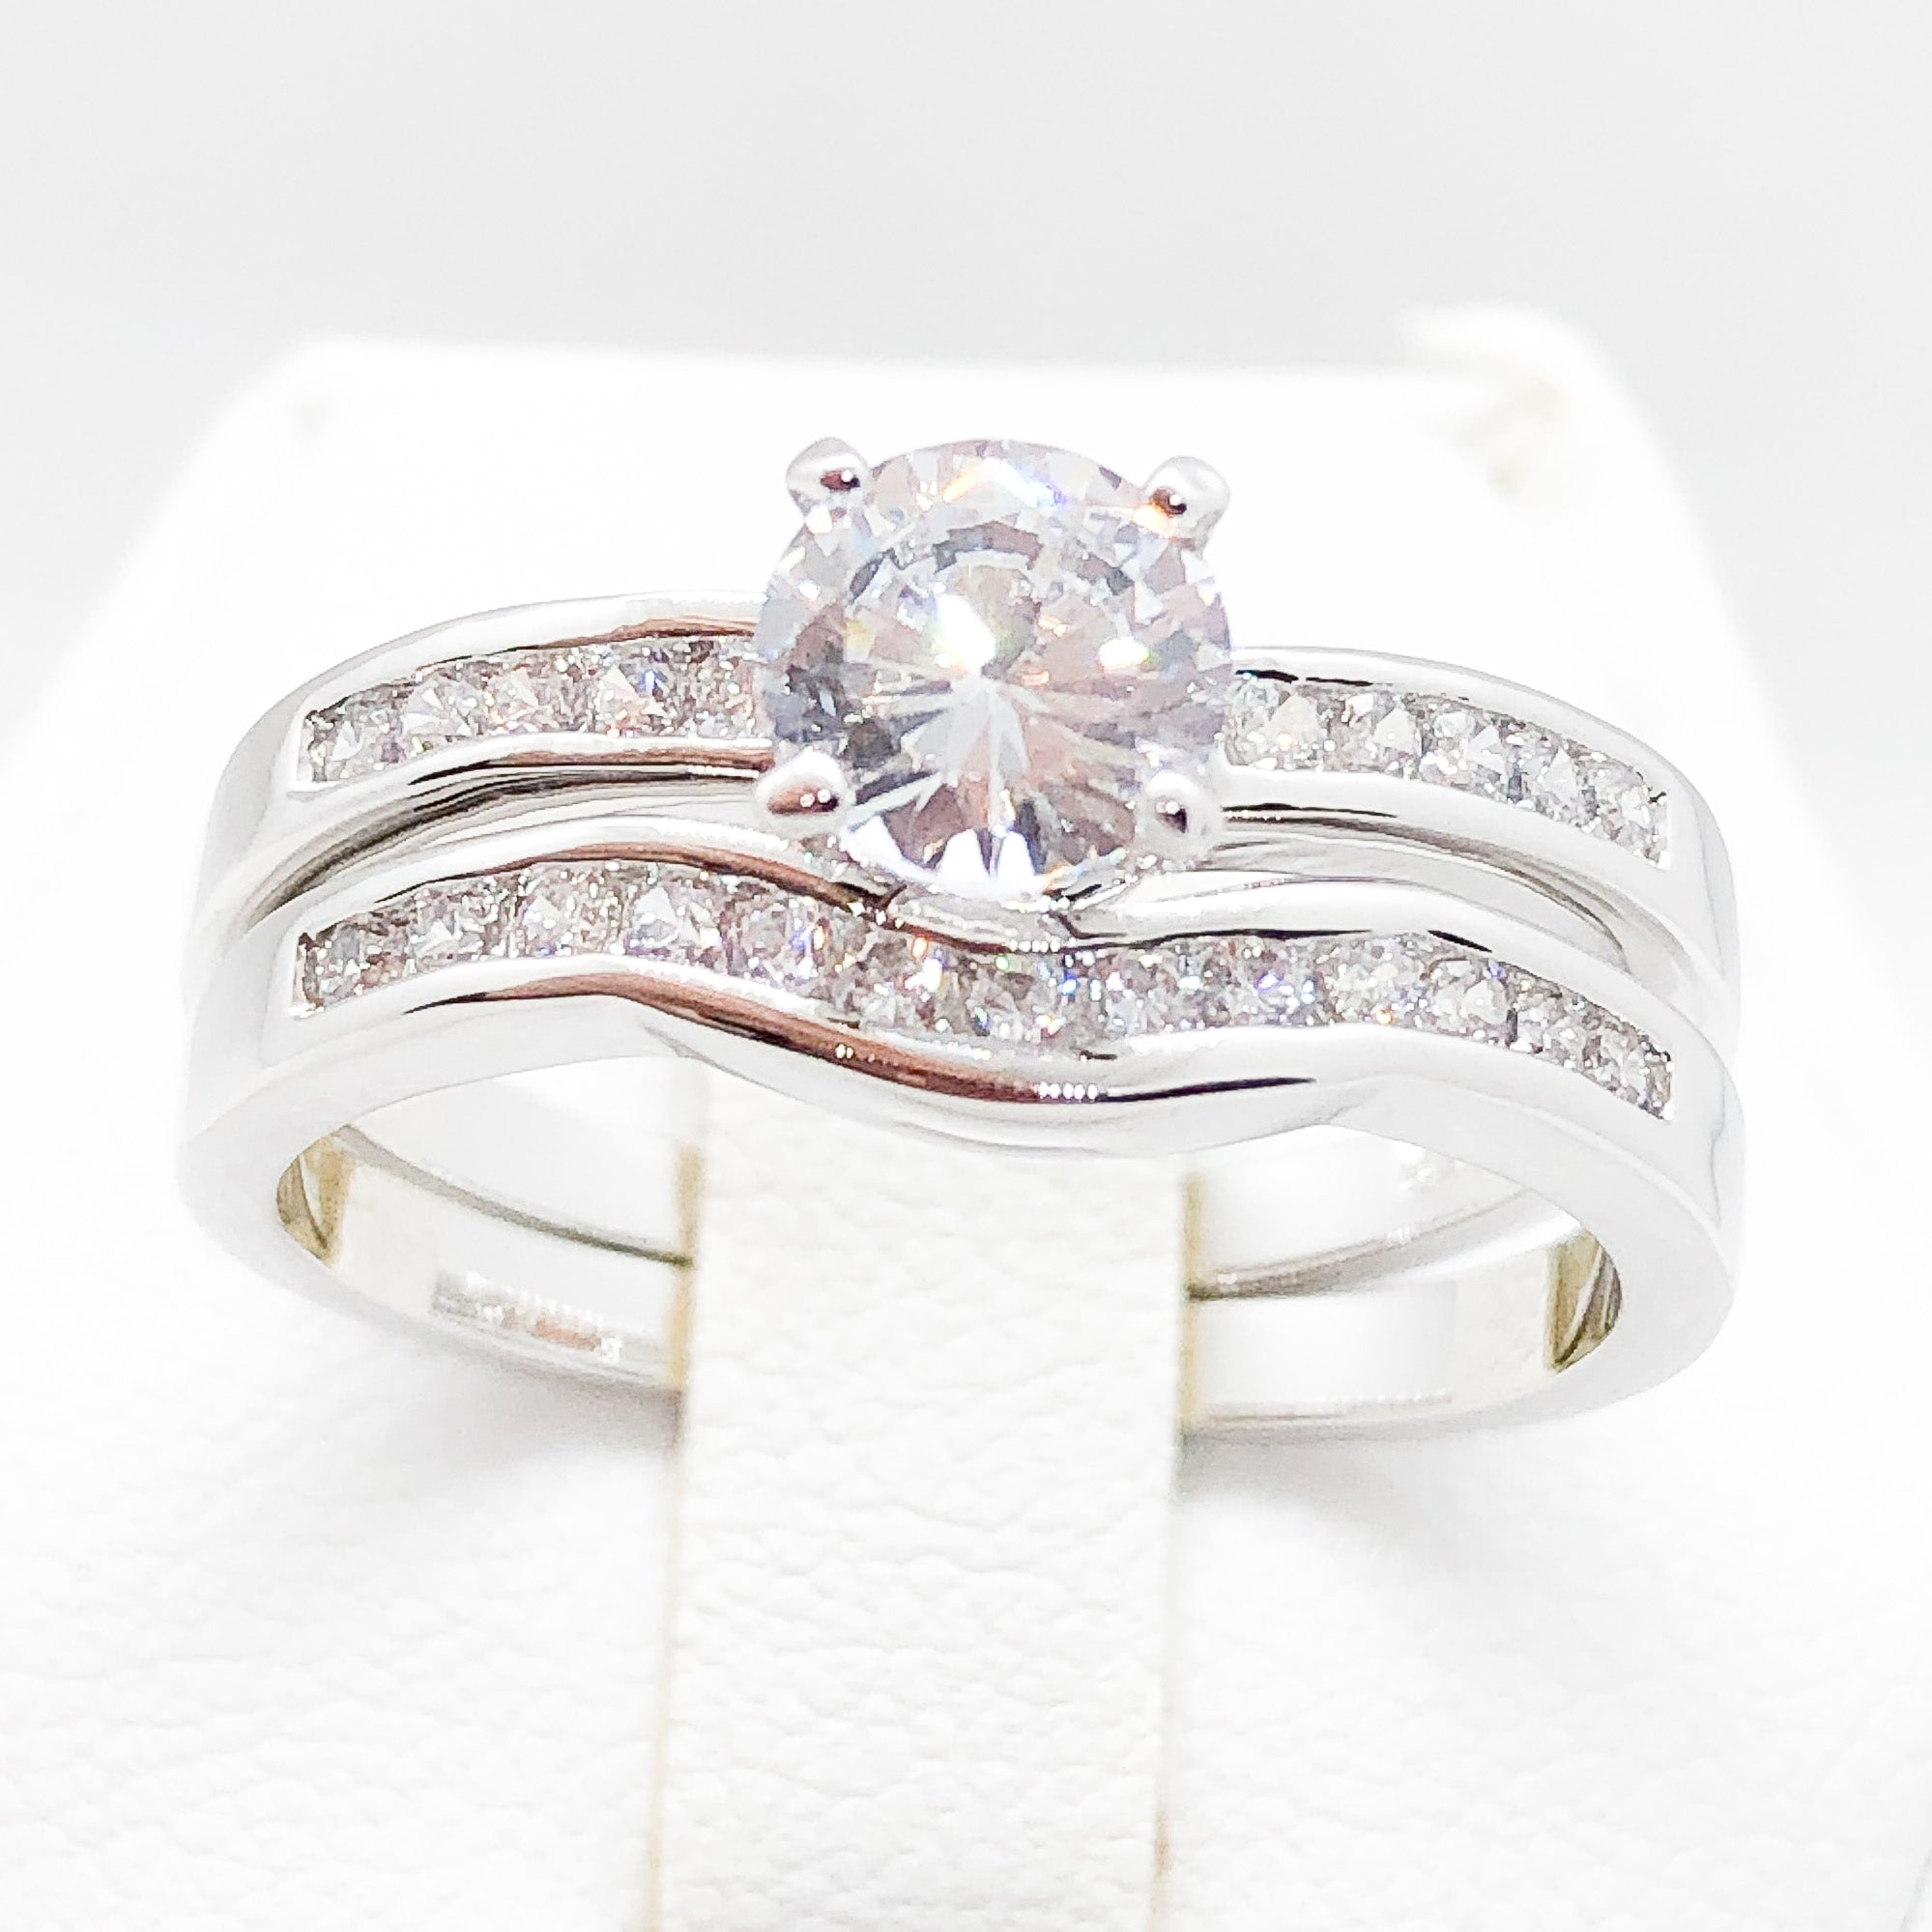 ID:R3593 Women Vintage Jewelry 18K White Gold GF Incredible Engagement Wedding 2pcs/Set Diamonique Bridal Band Ring